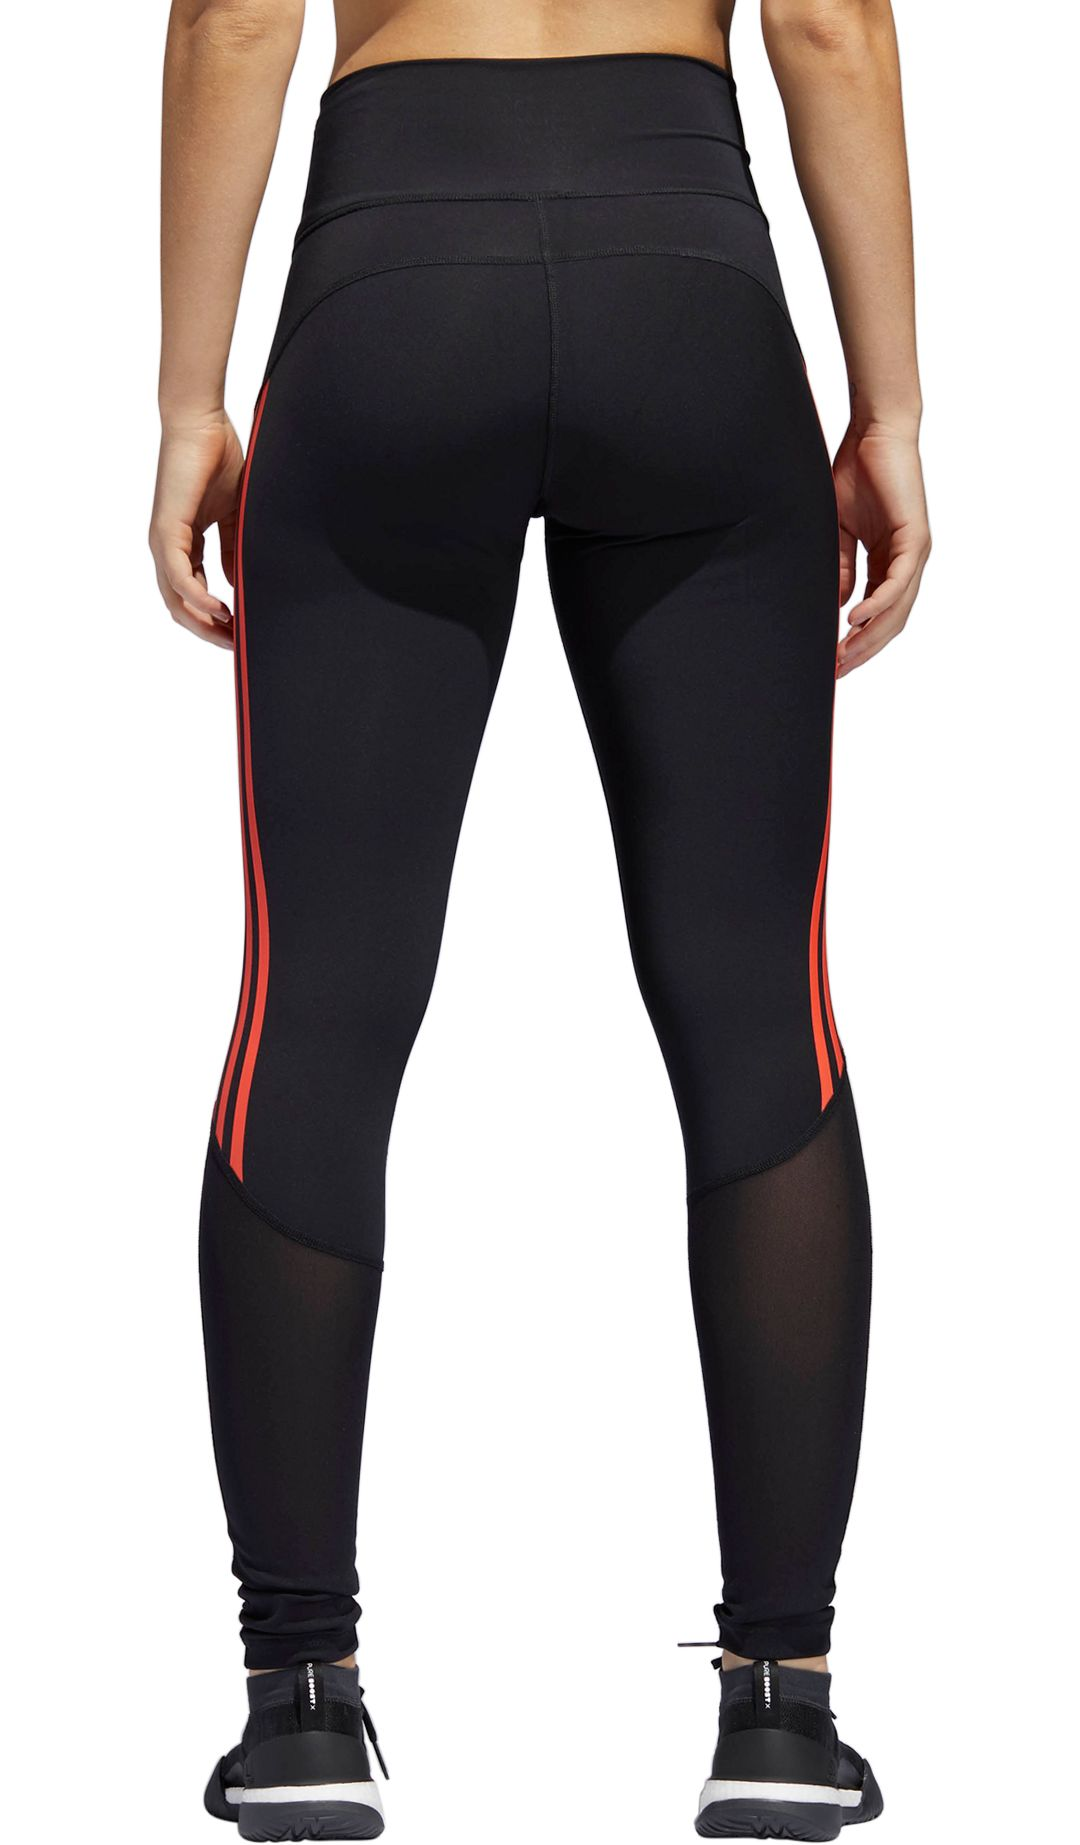 a0da217891e279 adidas Women's Believe This 3-Stripe 7/8 Training Tights | DICK'S ...